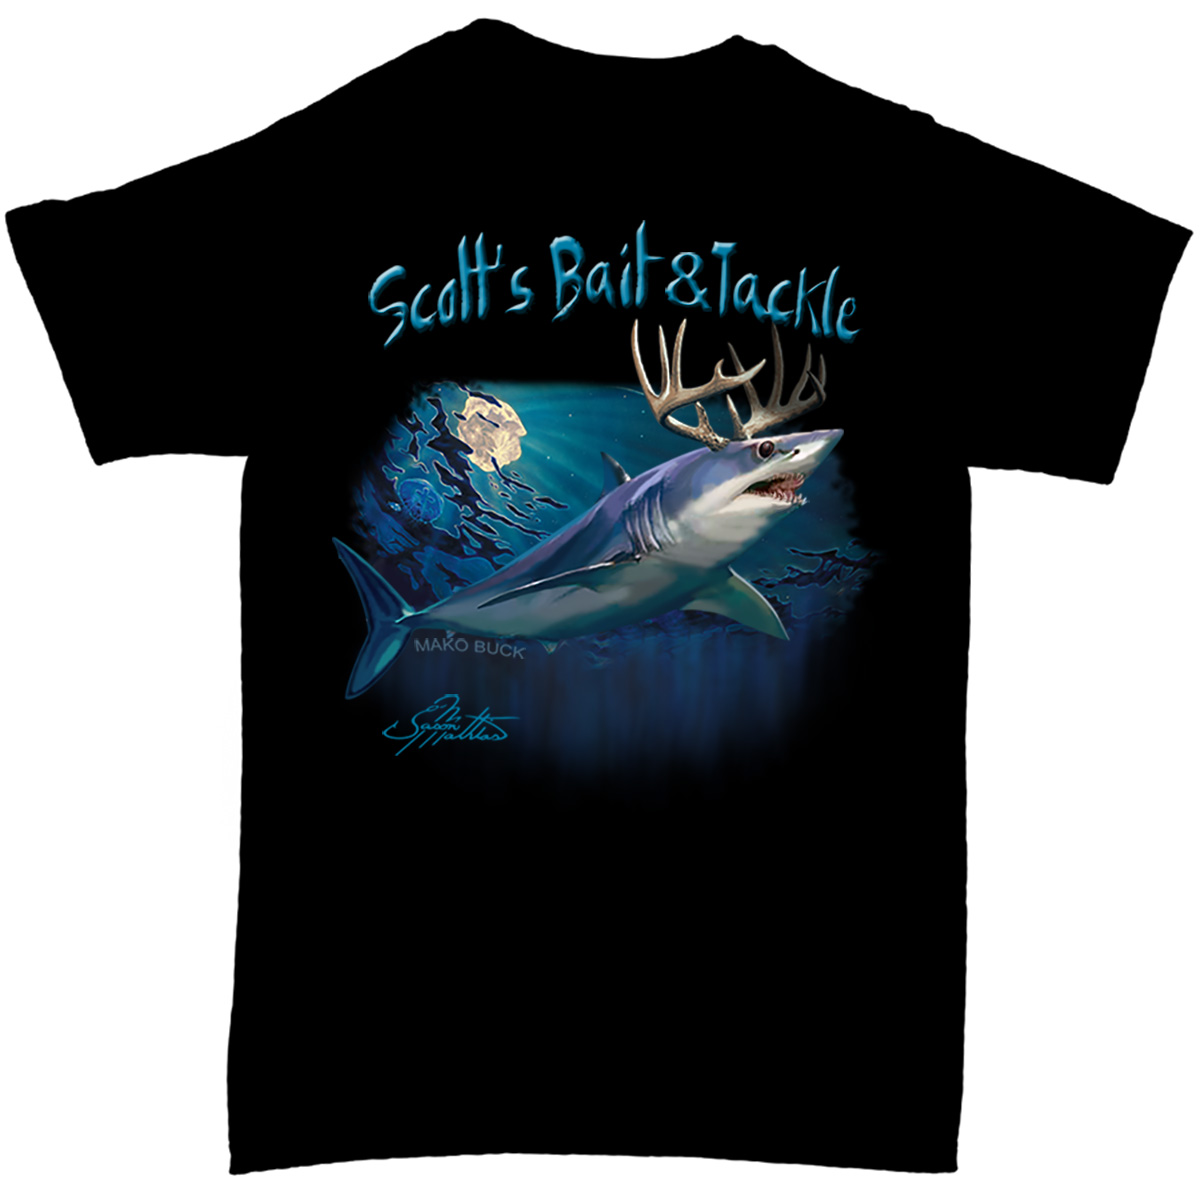 Scott's Signature MakoBuck T-Shirt